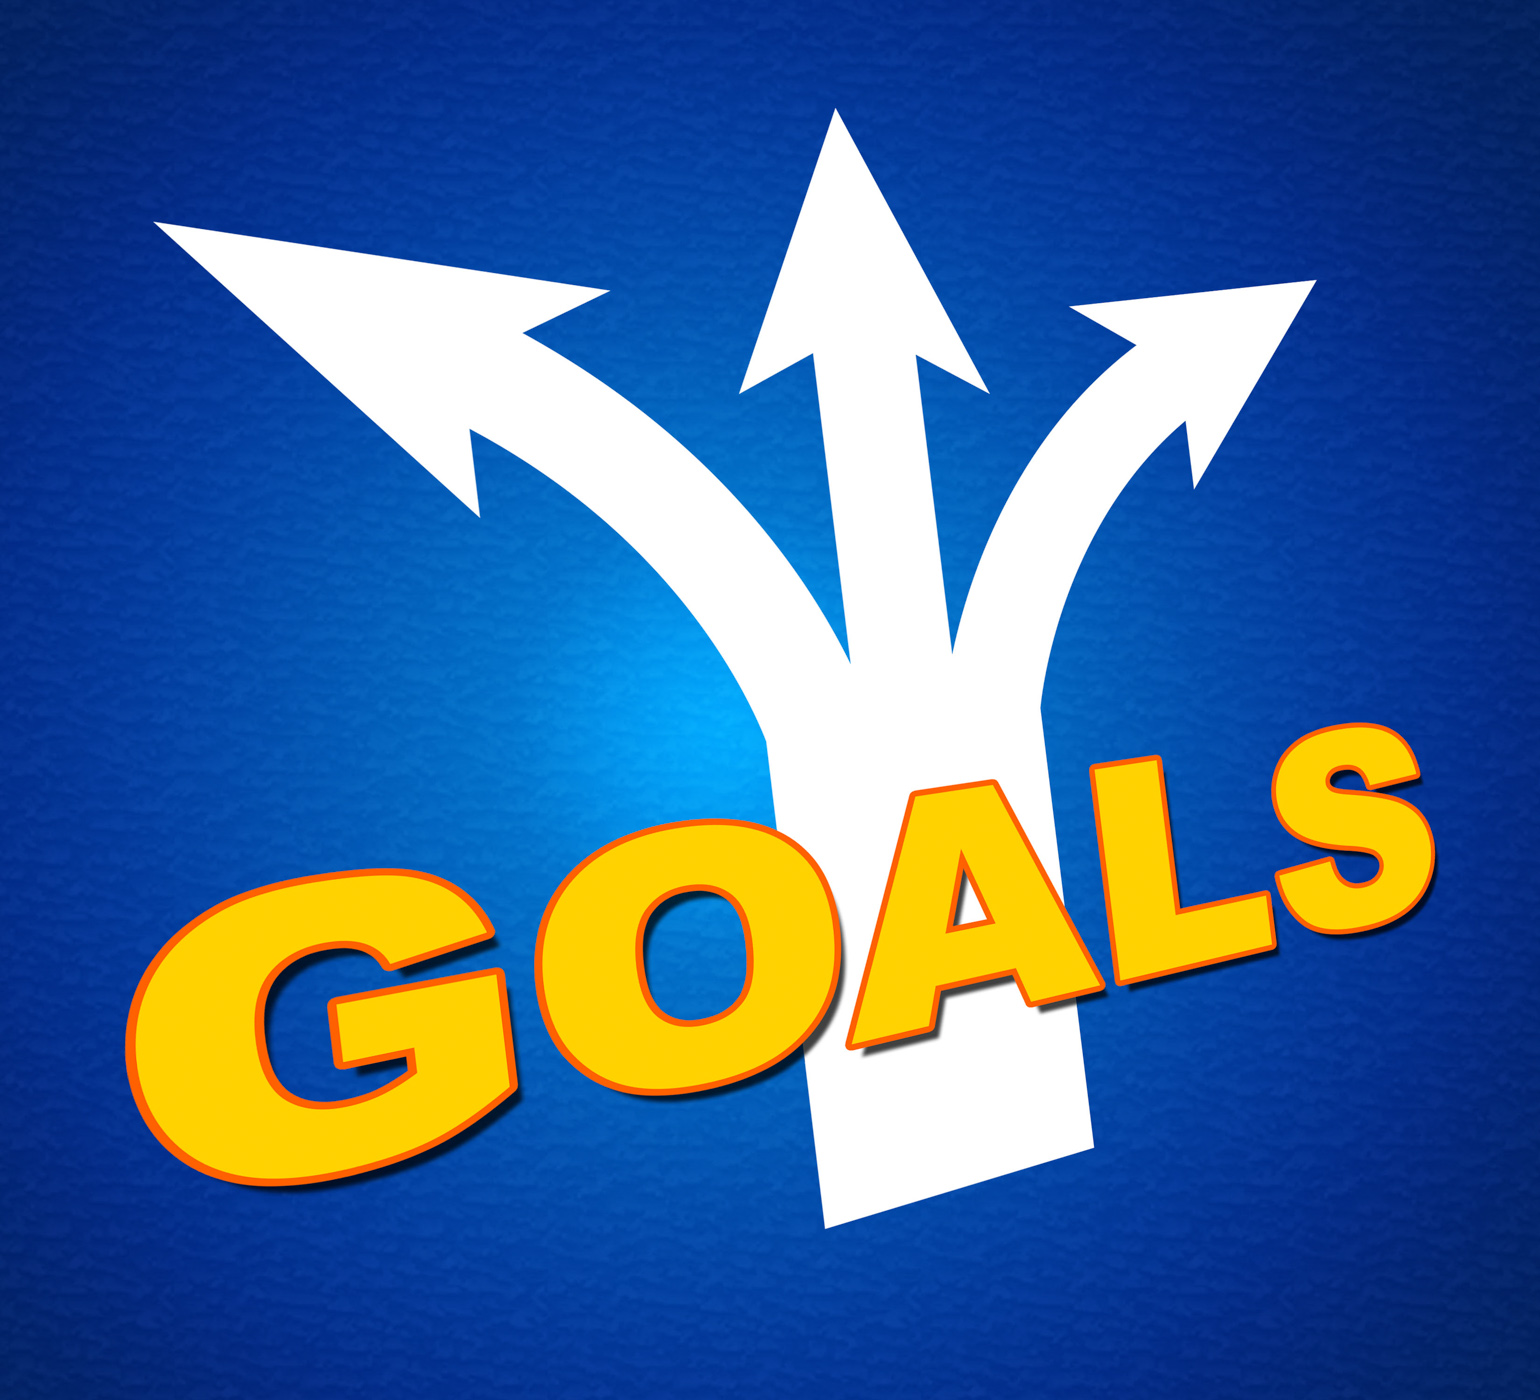 Goals Arrows Shows Targeting Direction And Aspirations, Inspiration, Targets, Targeting, Target, HQ Photo